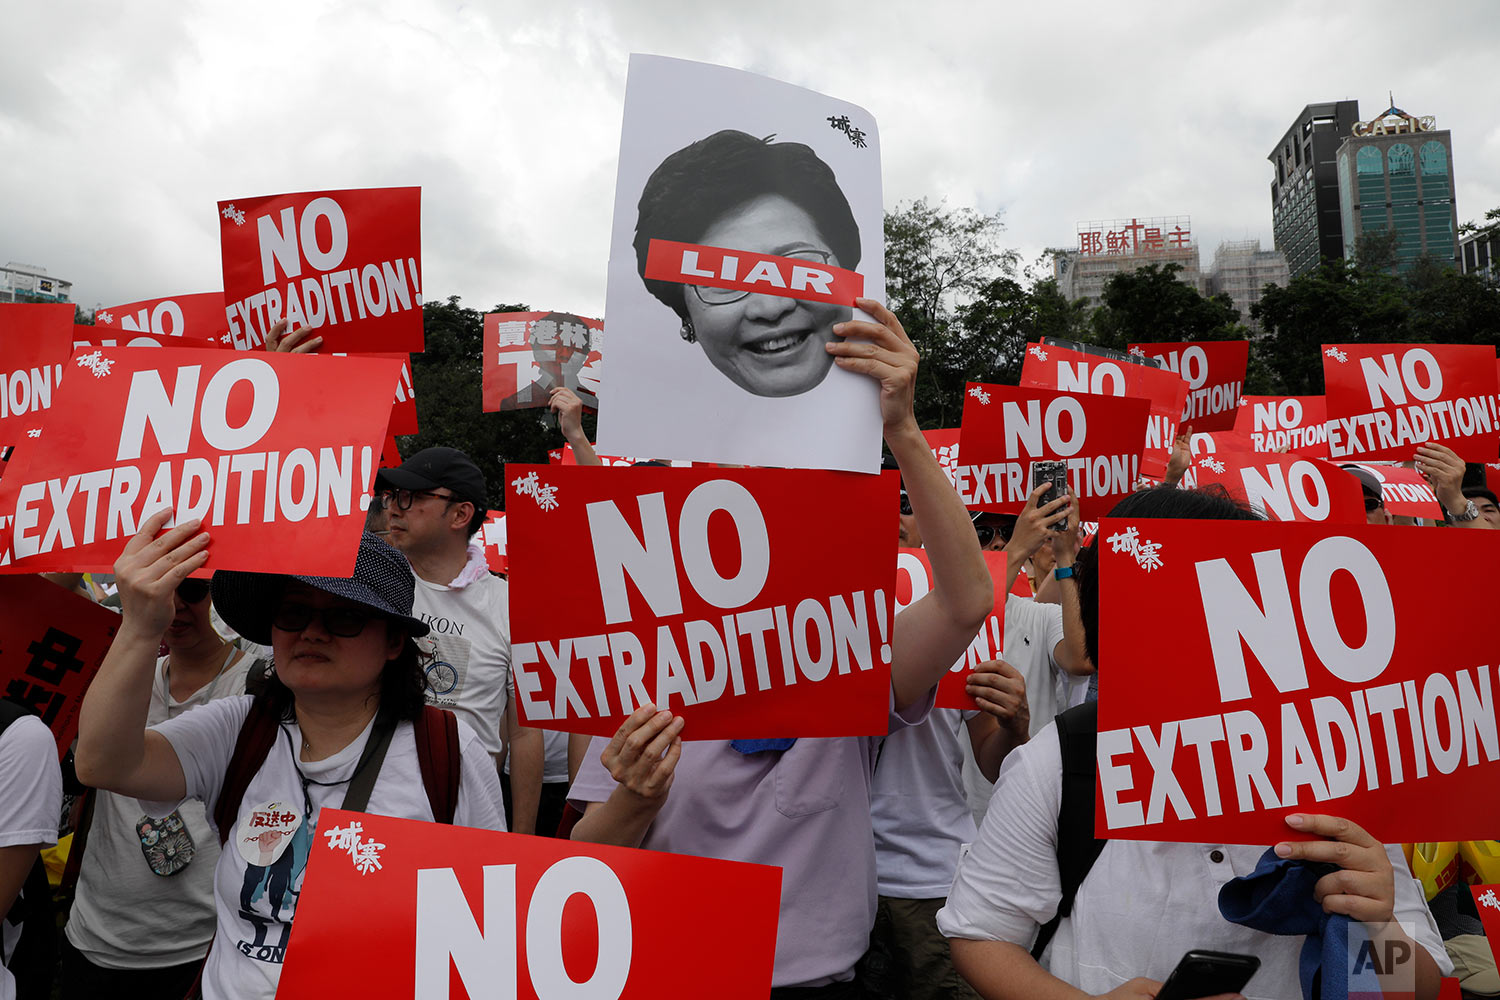 Protesters hold placards as they stage protest against the extradition law in Hong Kong, June 9, 2019. (AP Photo/Vincent Yu)